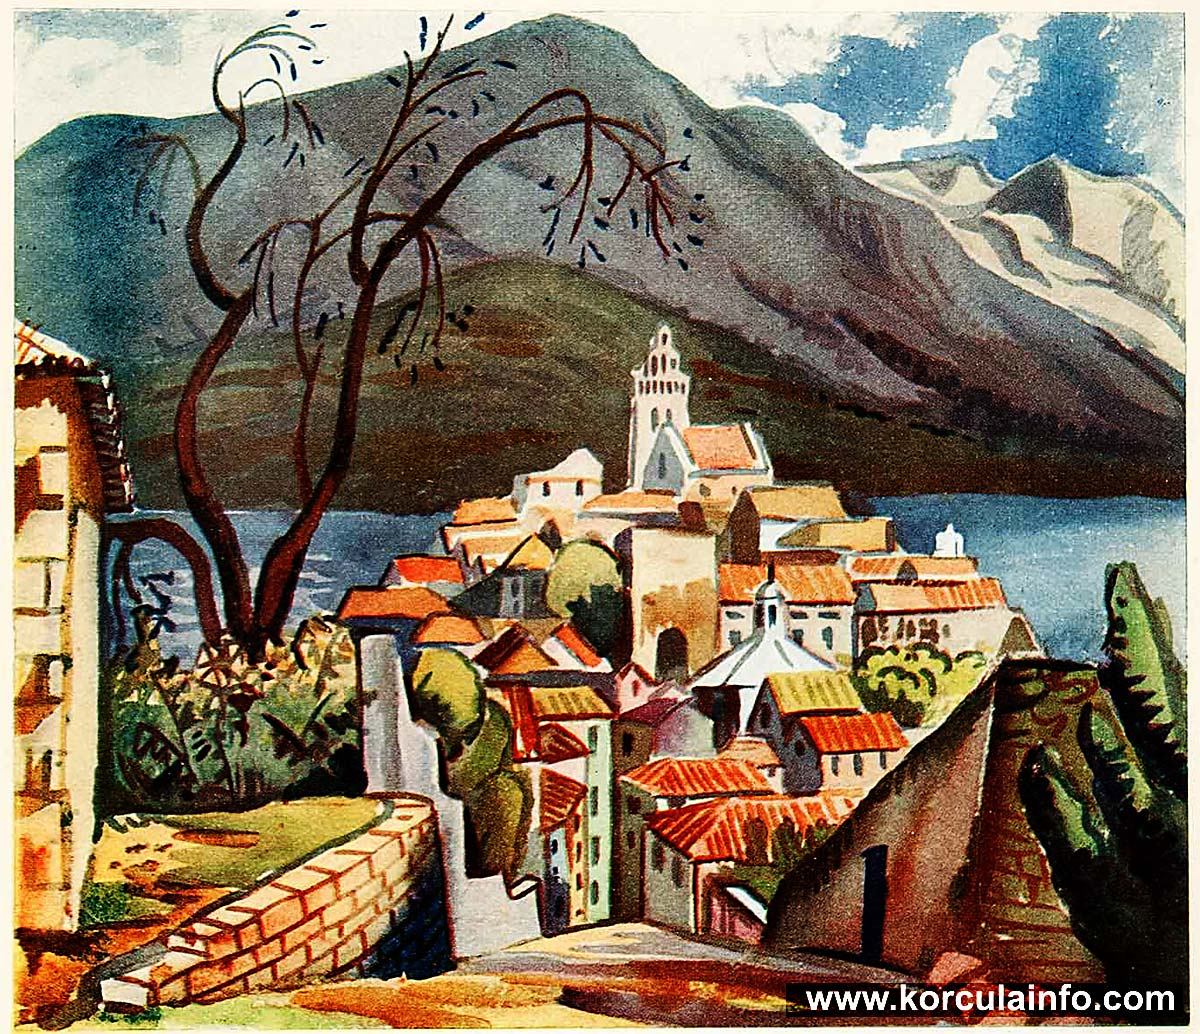 Painting of Korcula by Jan Gordon from 1922